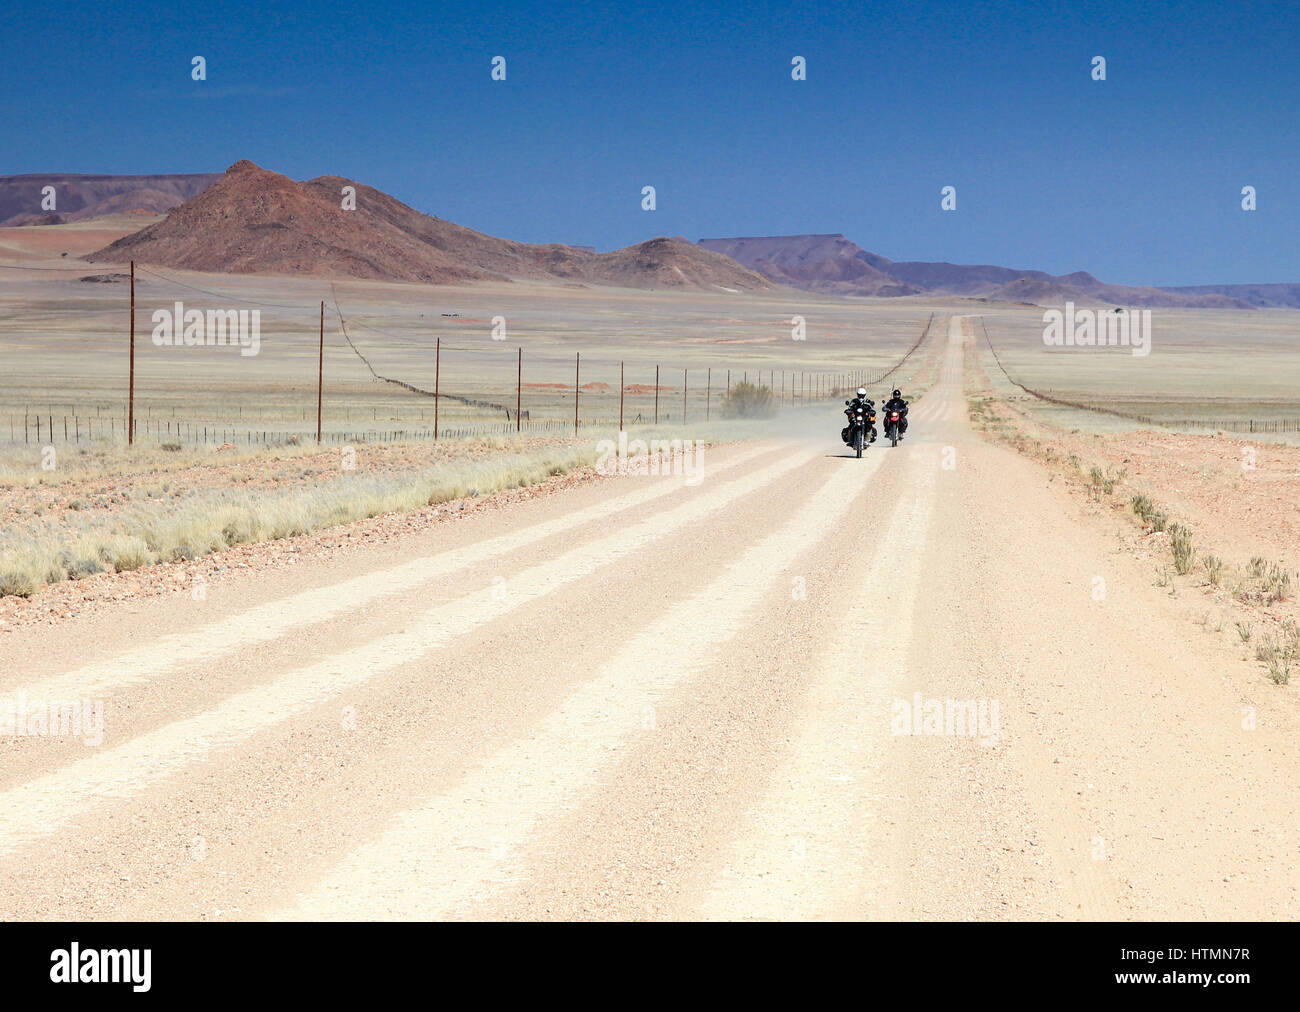 Two motorbikes driving fast on long straight desert road. - Stock Image